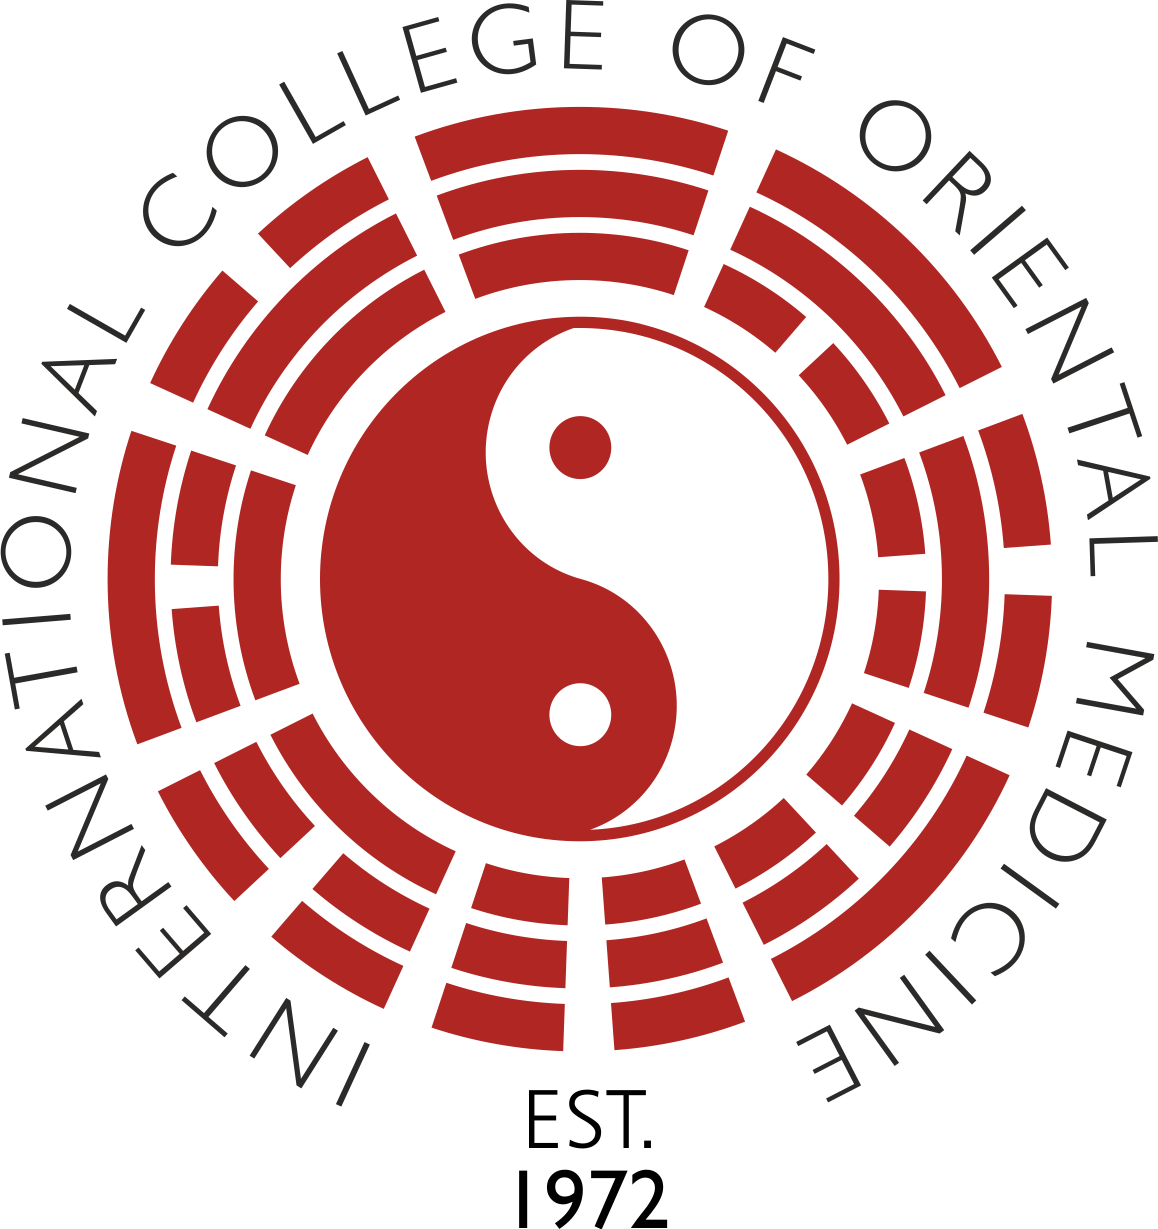 International College of Oriental Medicine